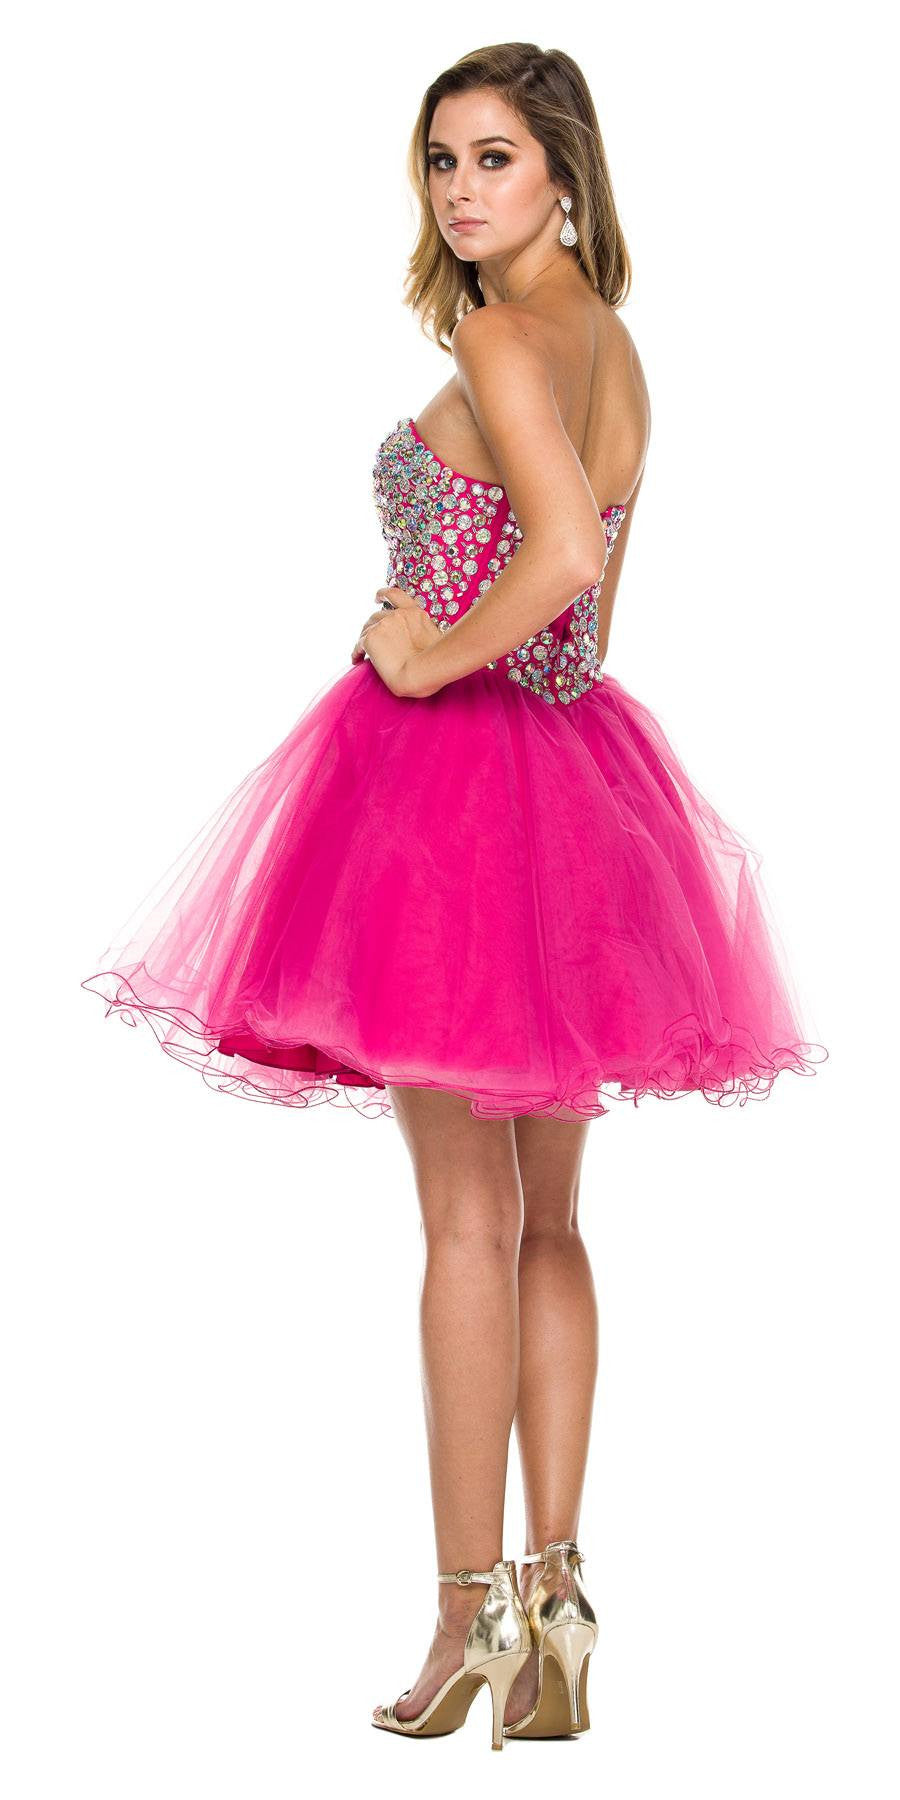 Strapless Rhinestone Embellished Bodice Short Prom Dress Fuchsia